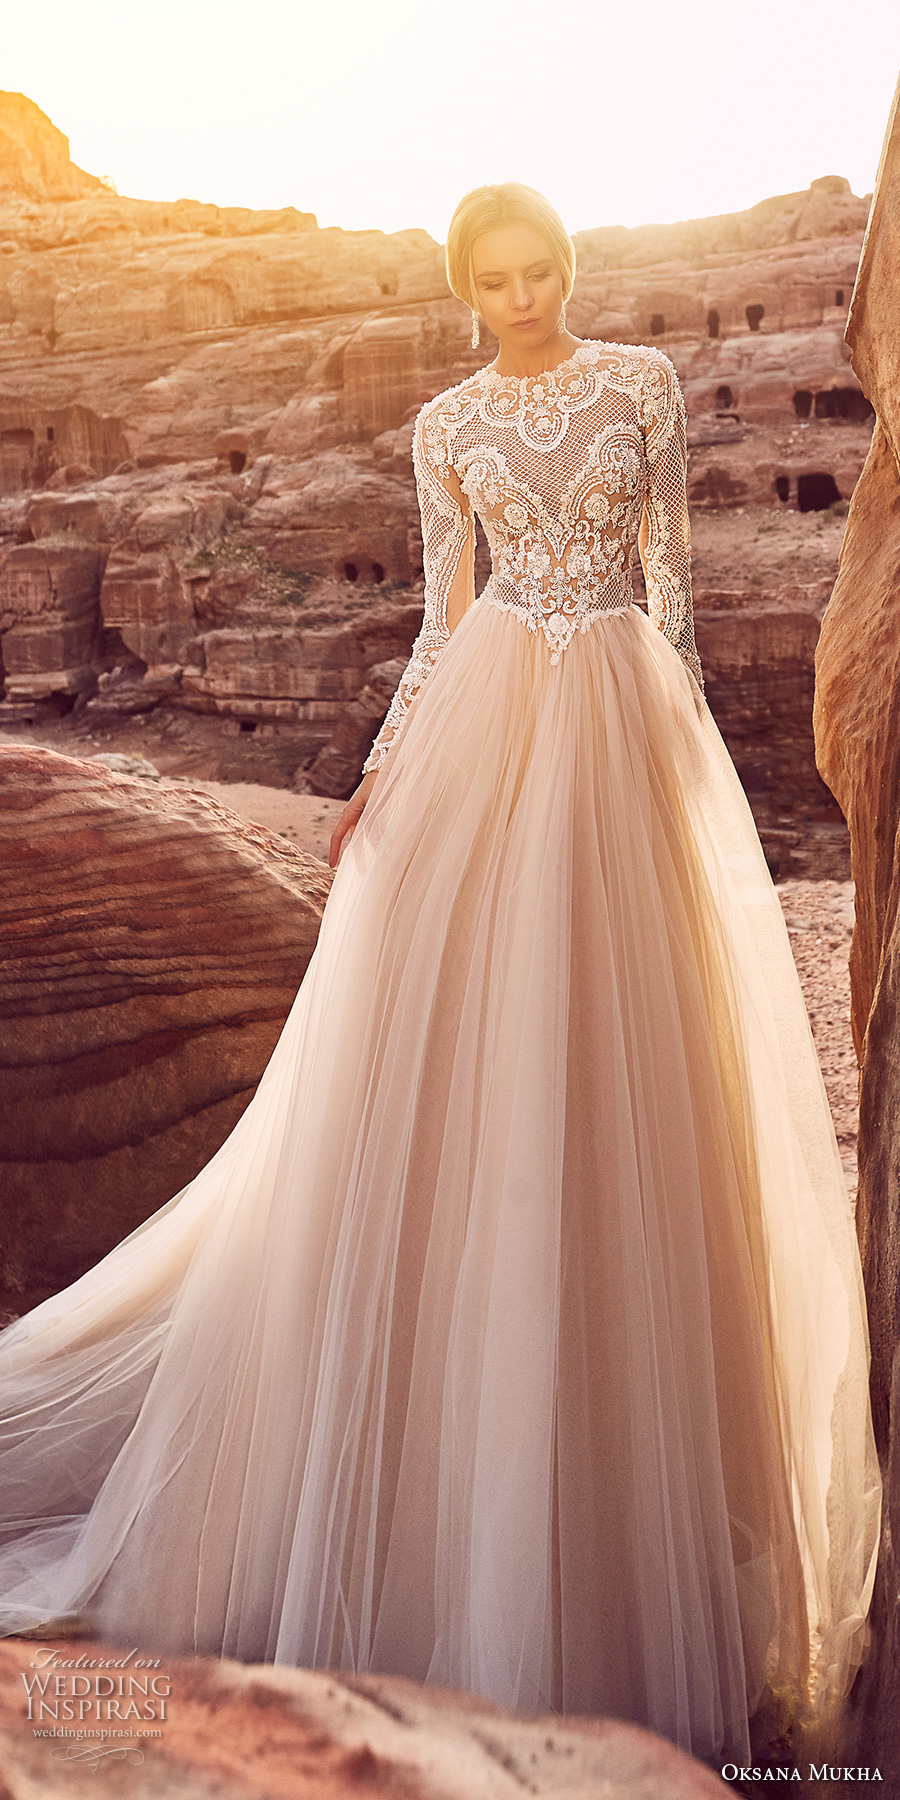 oksana mukha 2018 bridal long sleeves jewel neck heavily embellished lace bodice tulle skirt romantic a line wedding dress covered lace back royal train (khalissa) mv